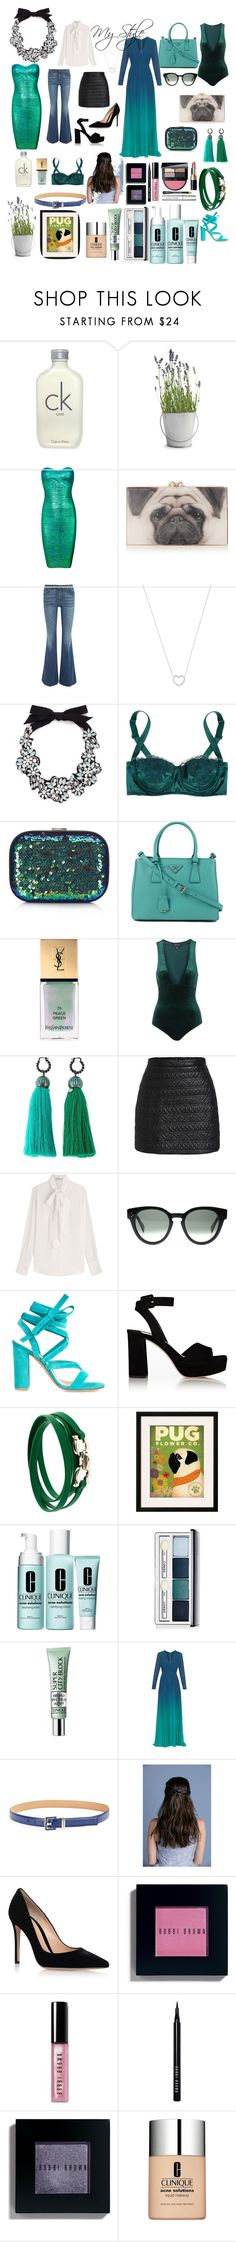 """""""My Style 1"""" by fabiola-perez06 ❤ liked on Polyvore featuring Calvin Klein, Potting Shed Creations, Posh Girl, Charlotte Olympia, Tom Ford, Tiffany & Co., J.Crew, Dolce&Gabbana, Wallis and Prada"""